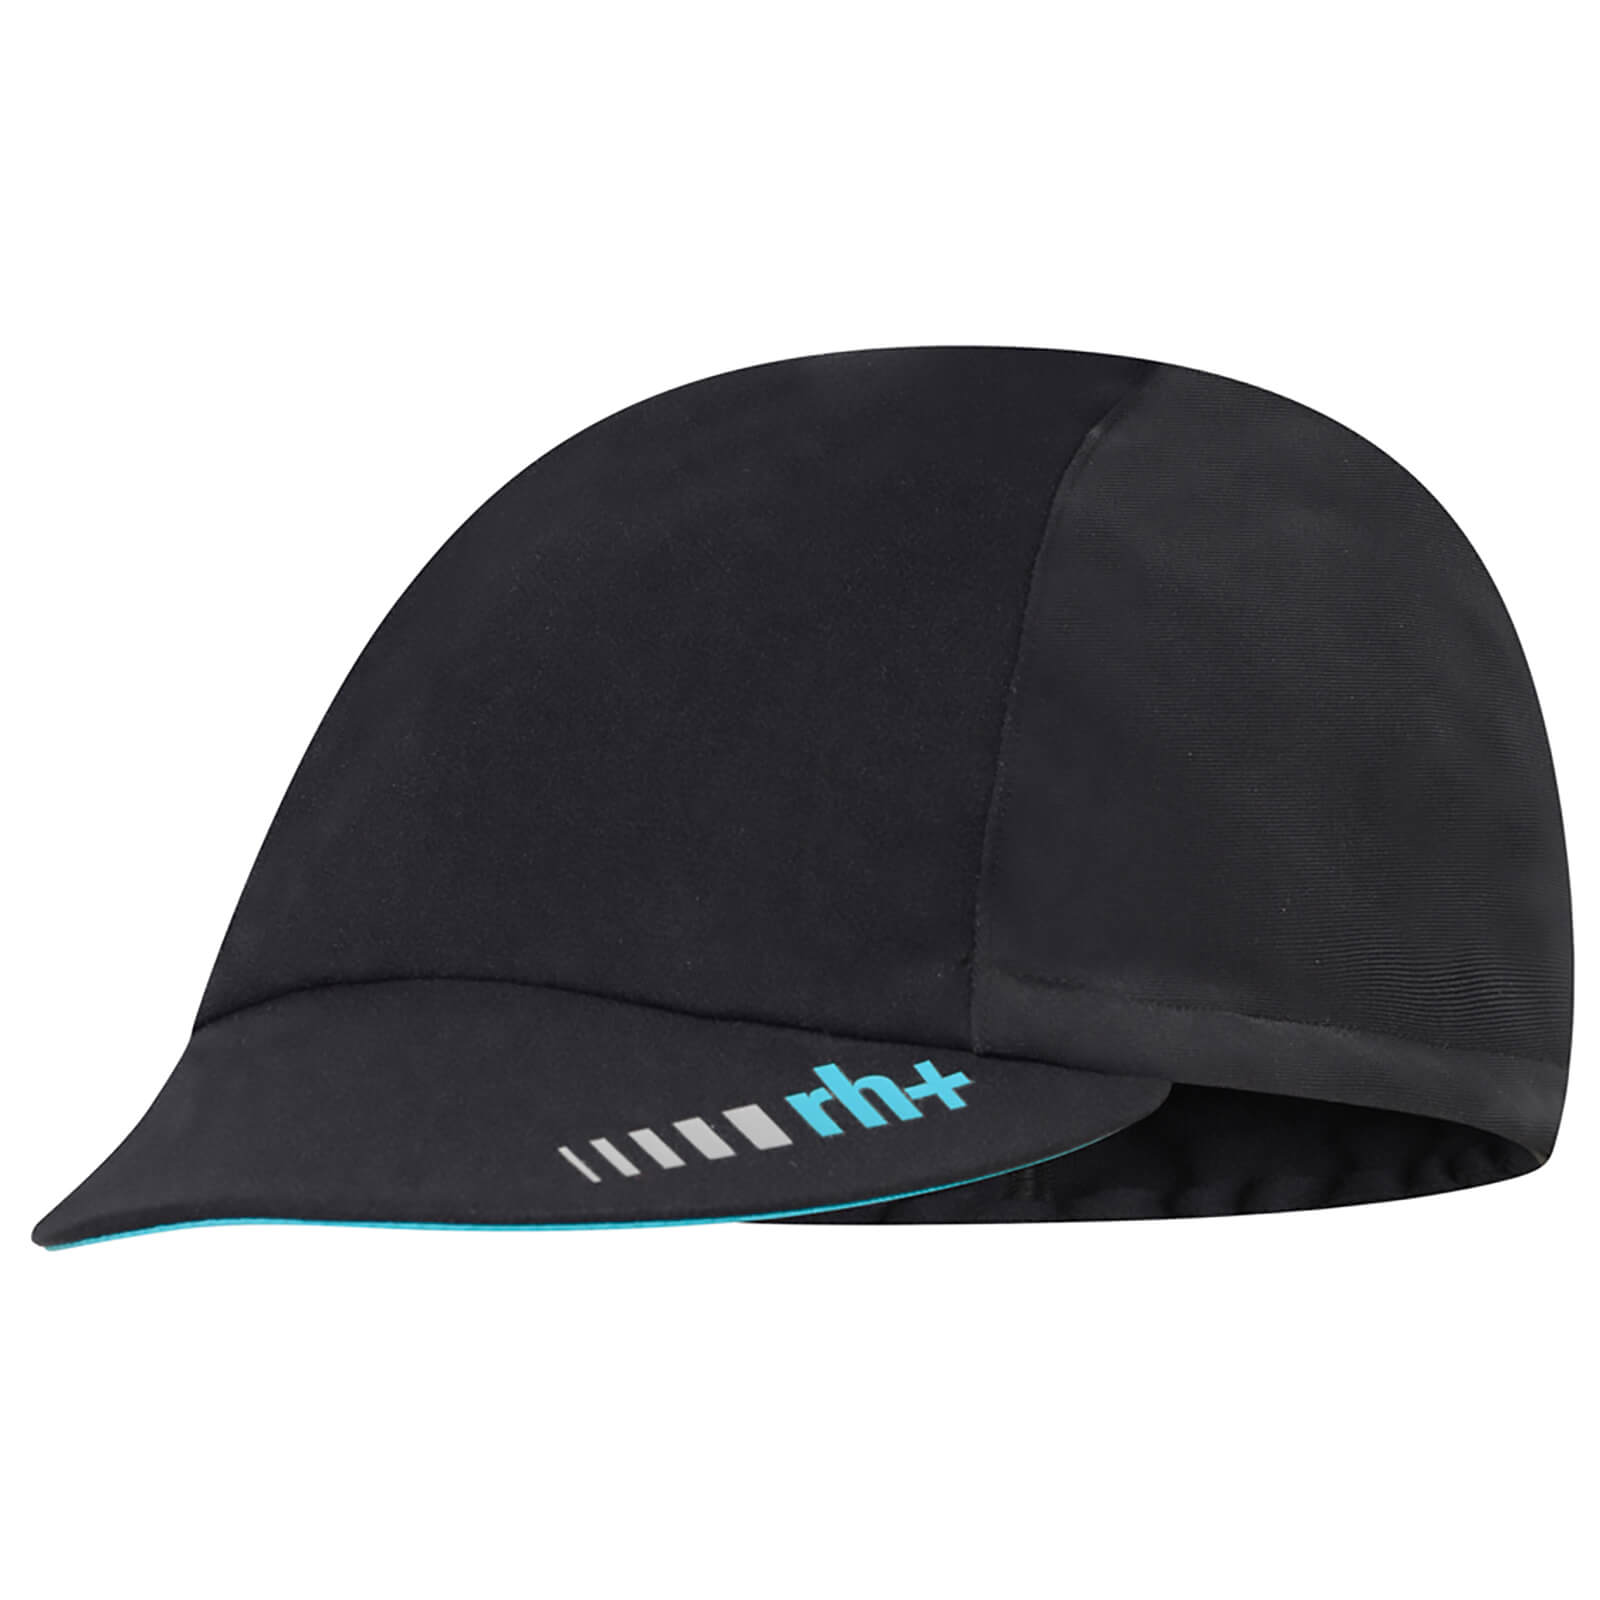 RH+ Shark Cap - Black